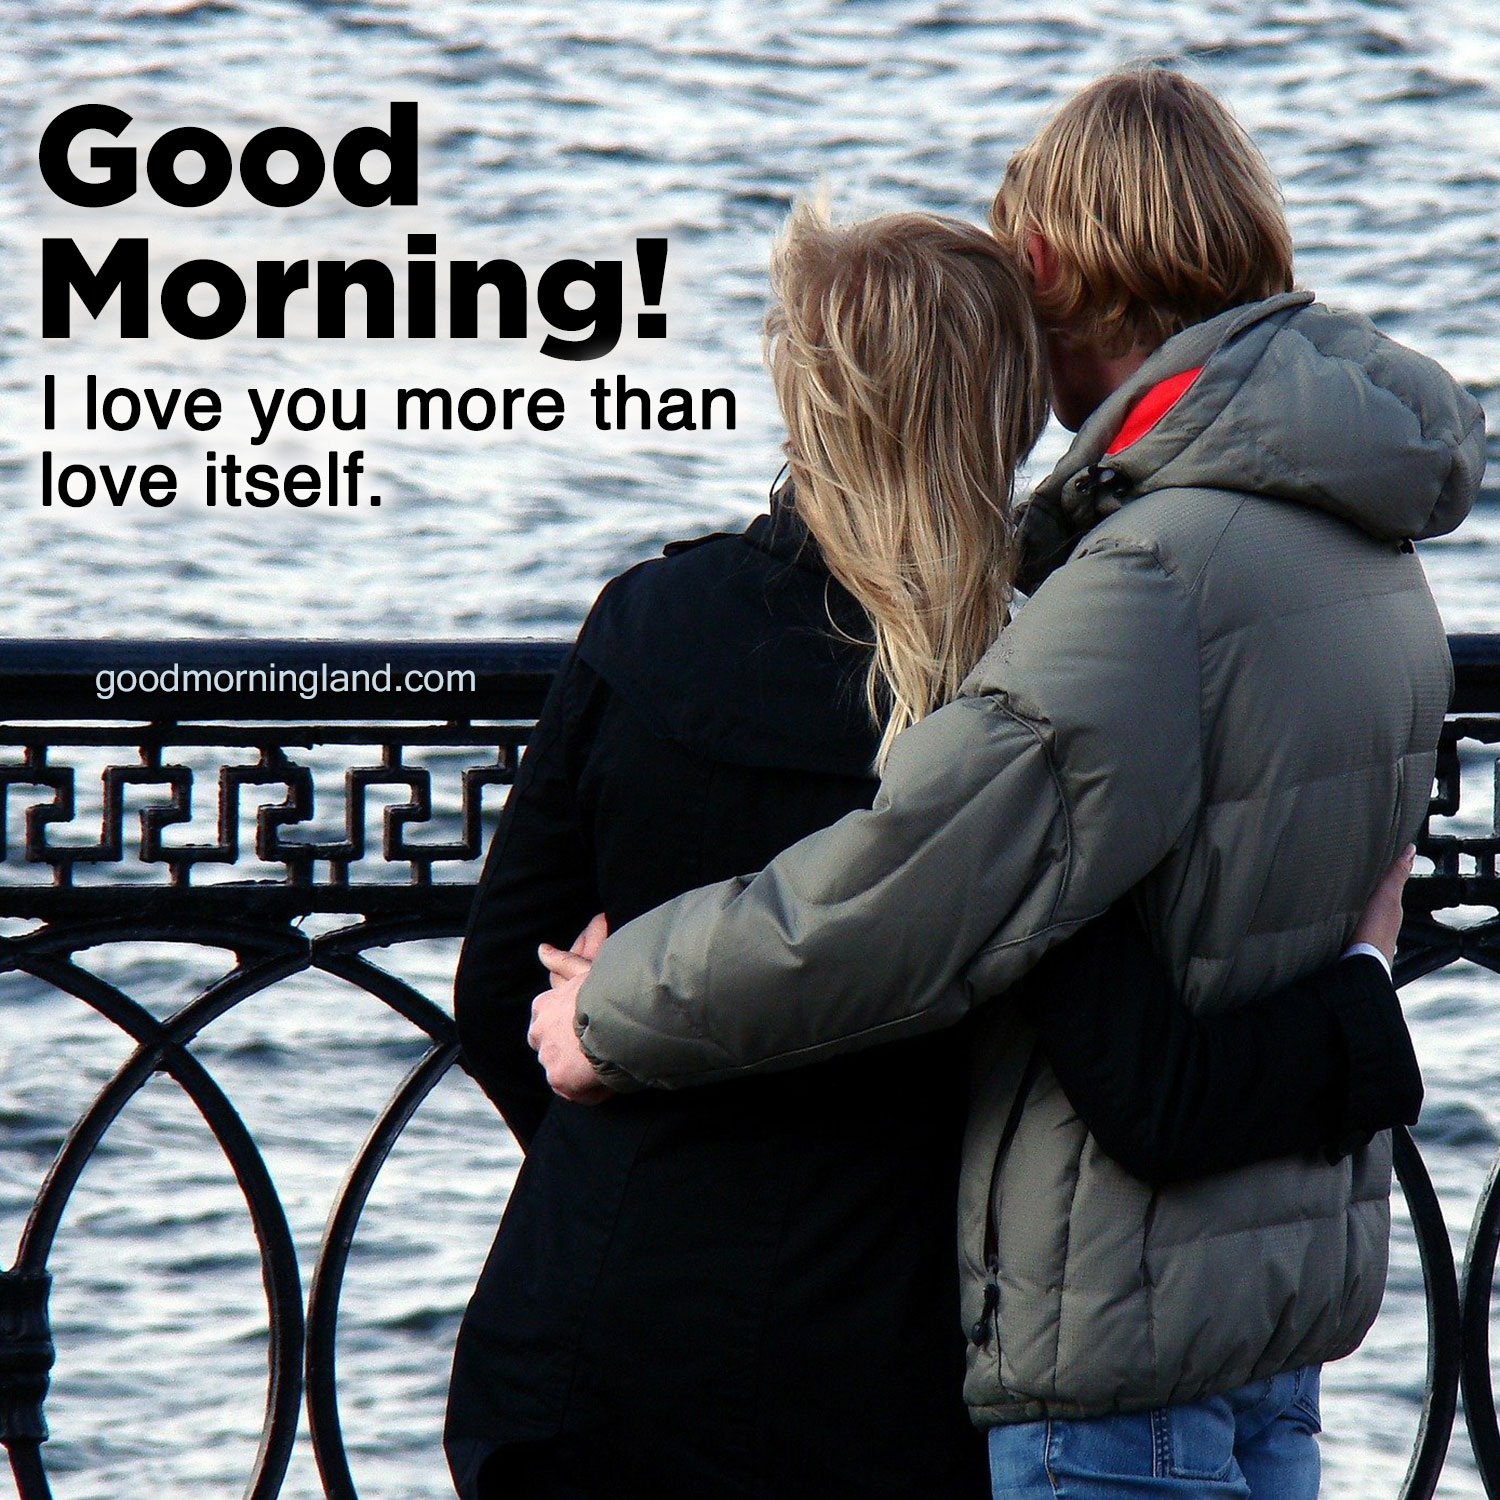 Best Good Morning Romantic Images For Husband And Wife Good Morning Images Quotes Wishes Messages Greetings Ecards